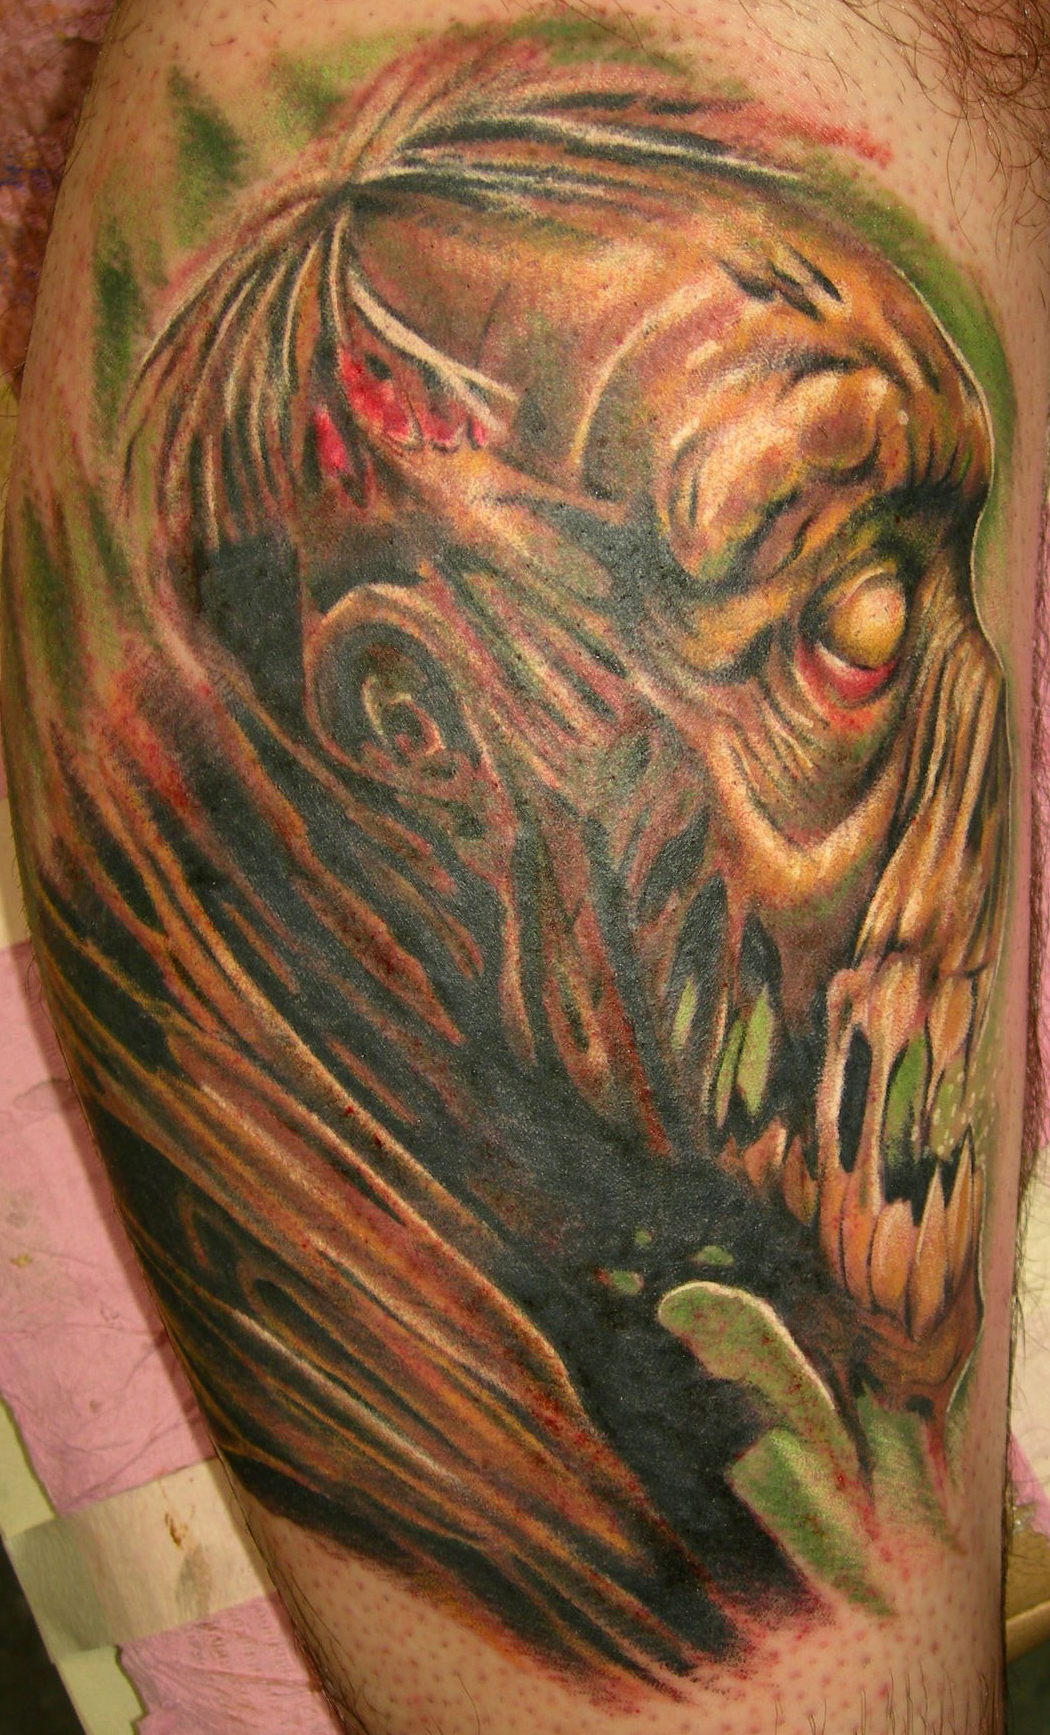 zombie tattoos designs ideas and meaning tattoos for you. Black Bedroom Furniture Sets. Home Design Ideas